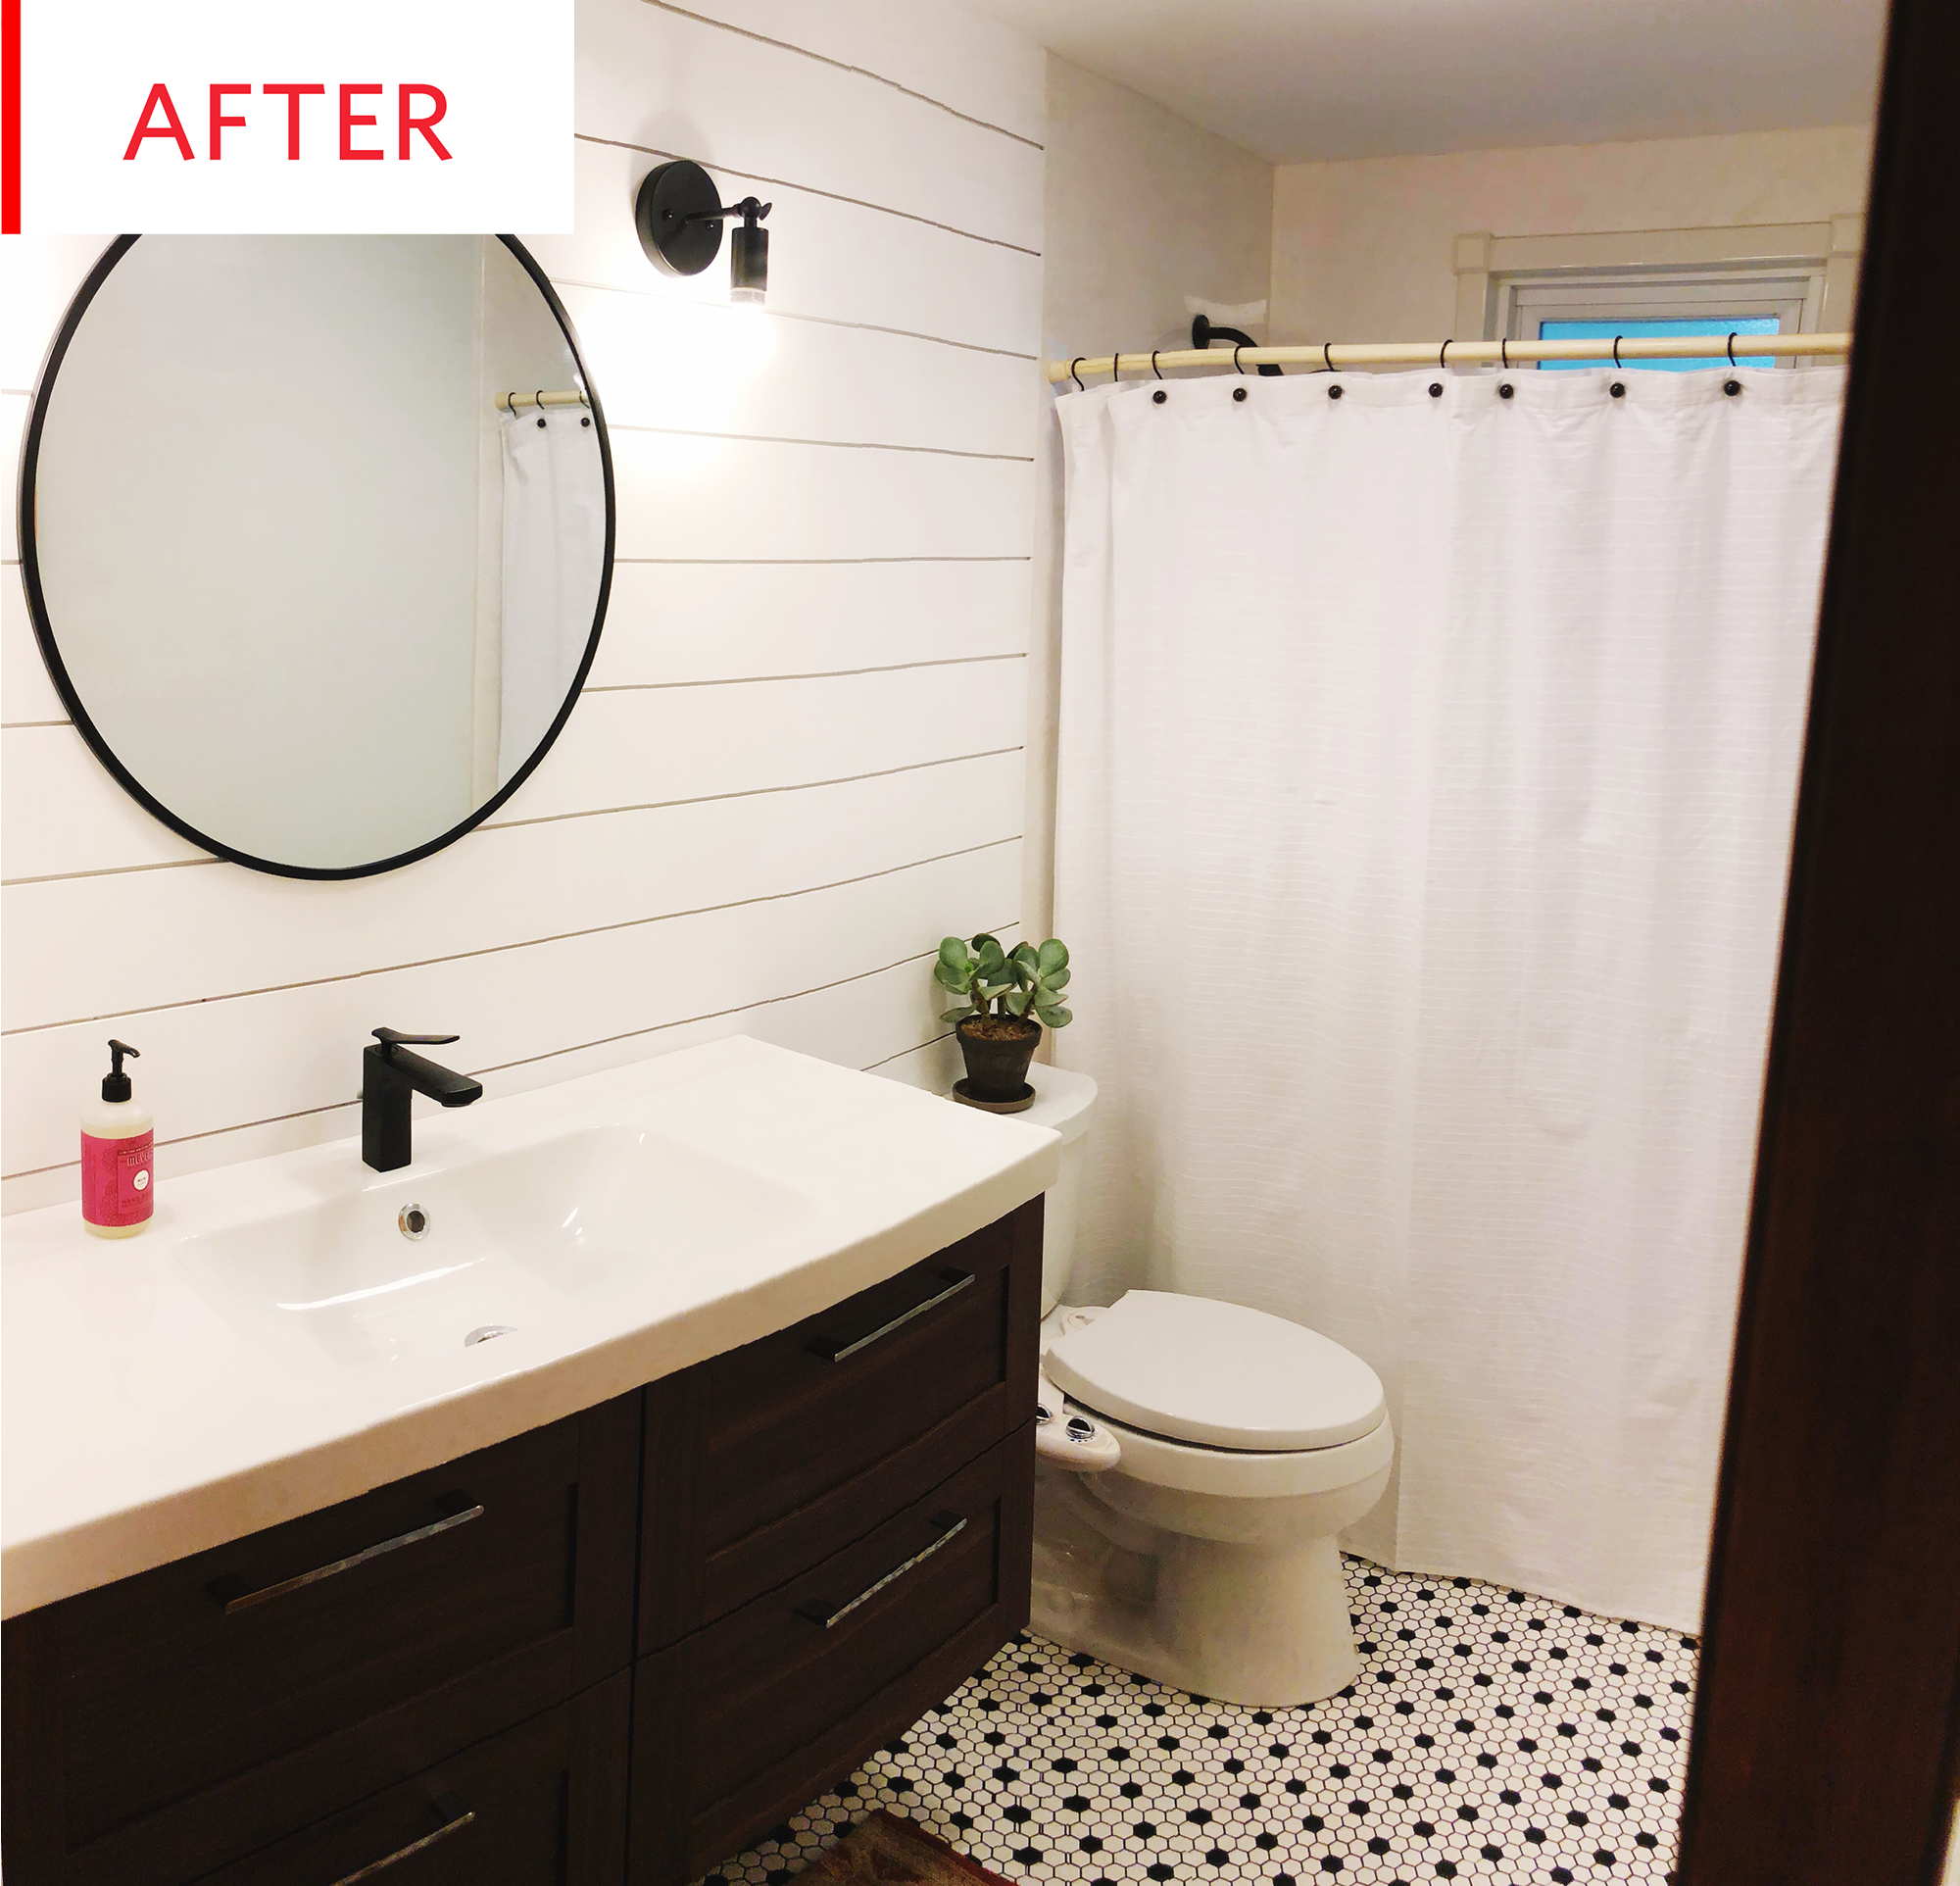 Before And After A One Week 5k Bathroom Remodel For The Ages